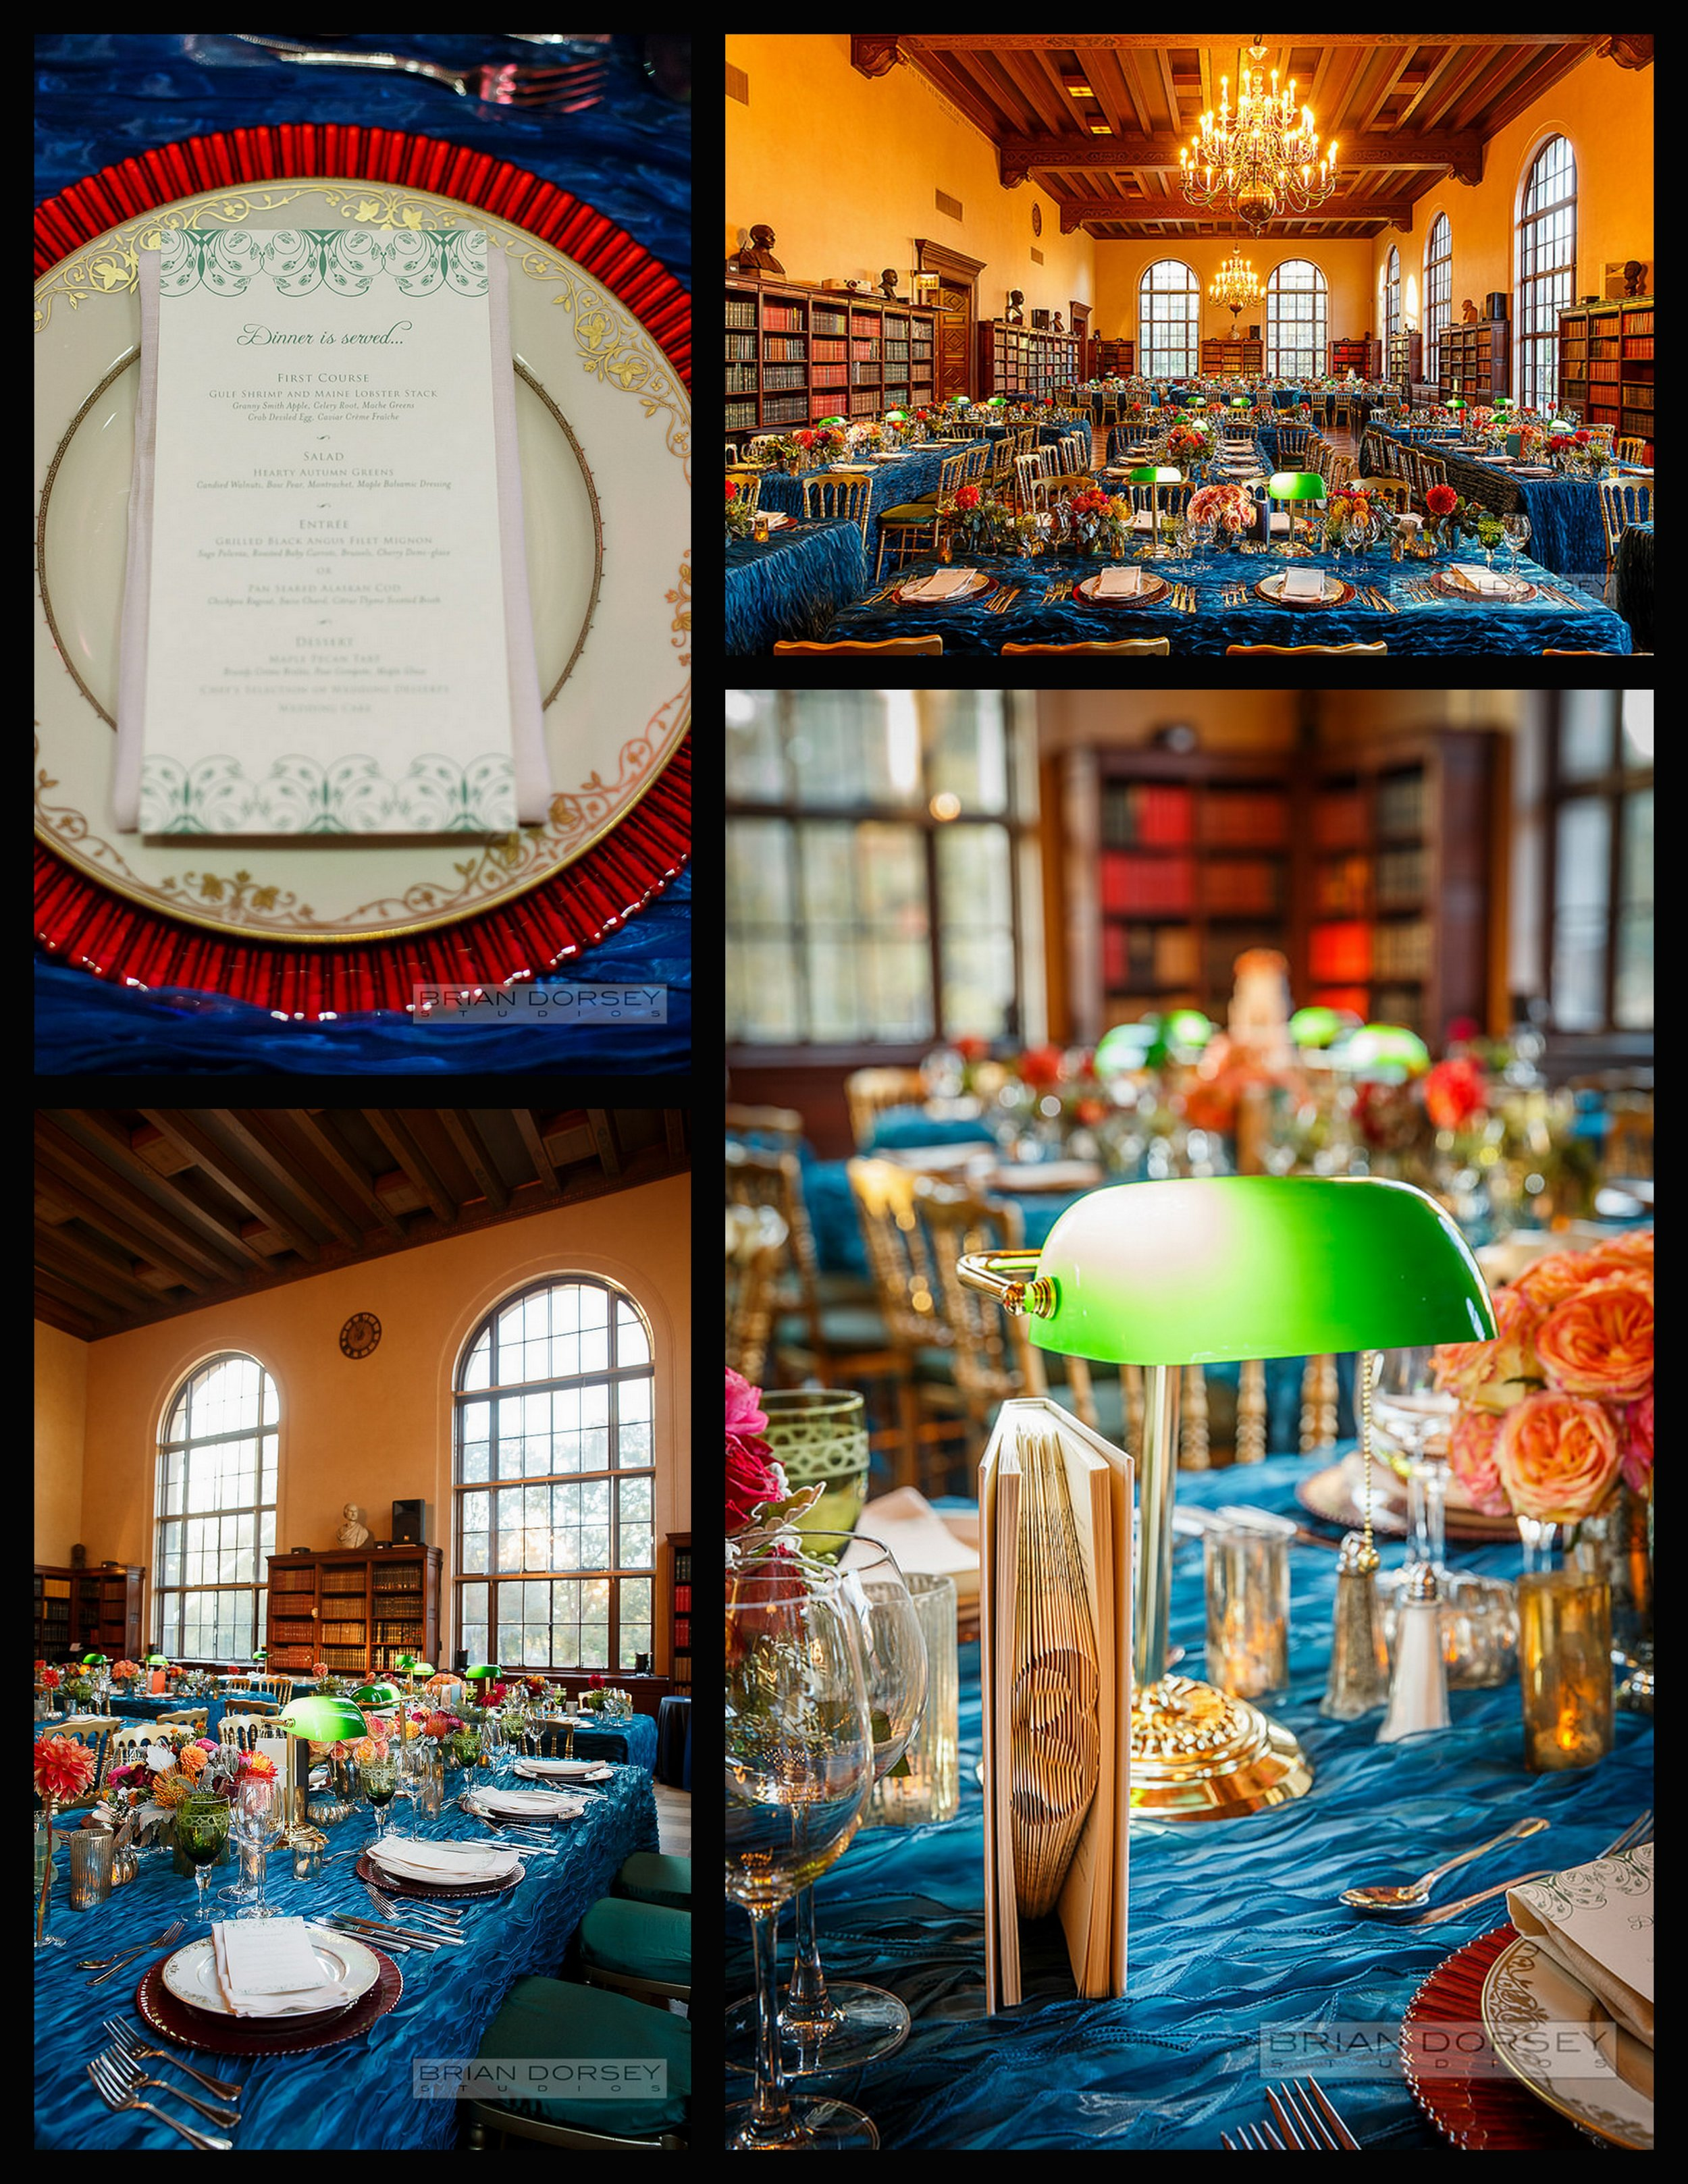 menu, reception room, blue tablecloths, library lamps